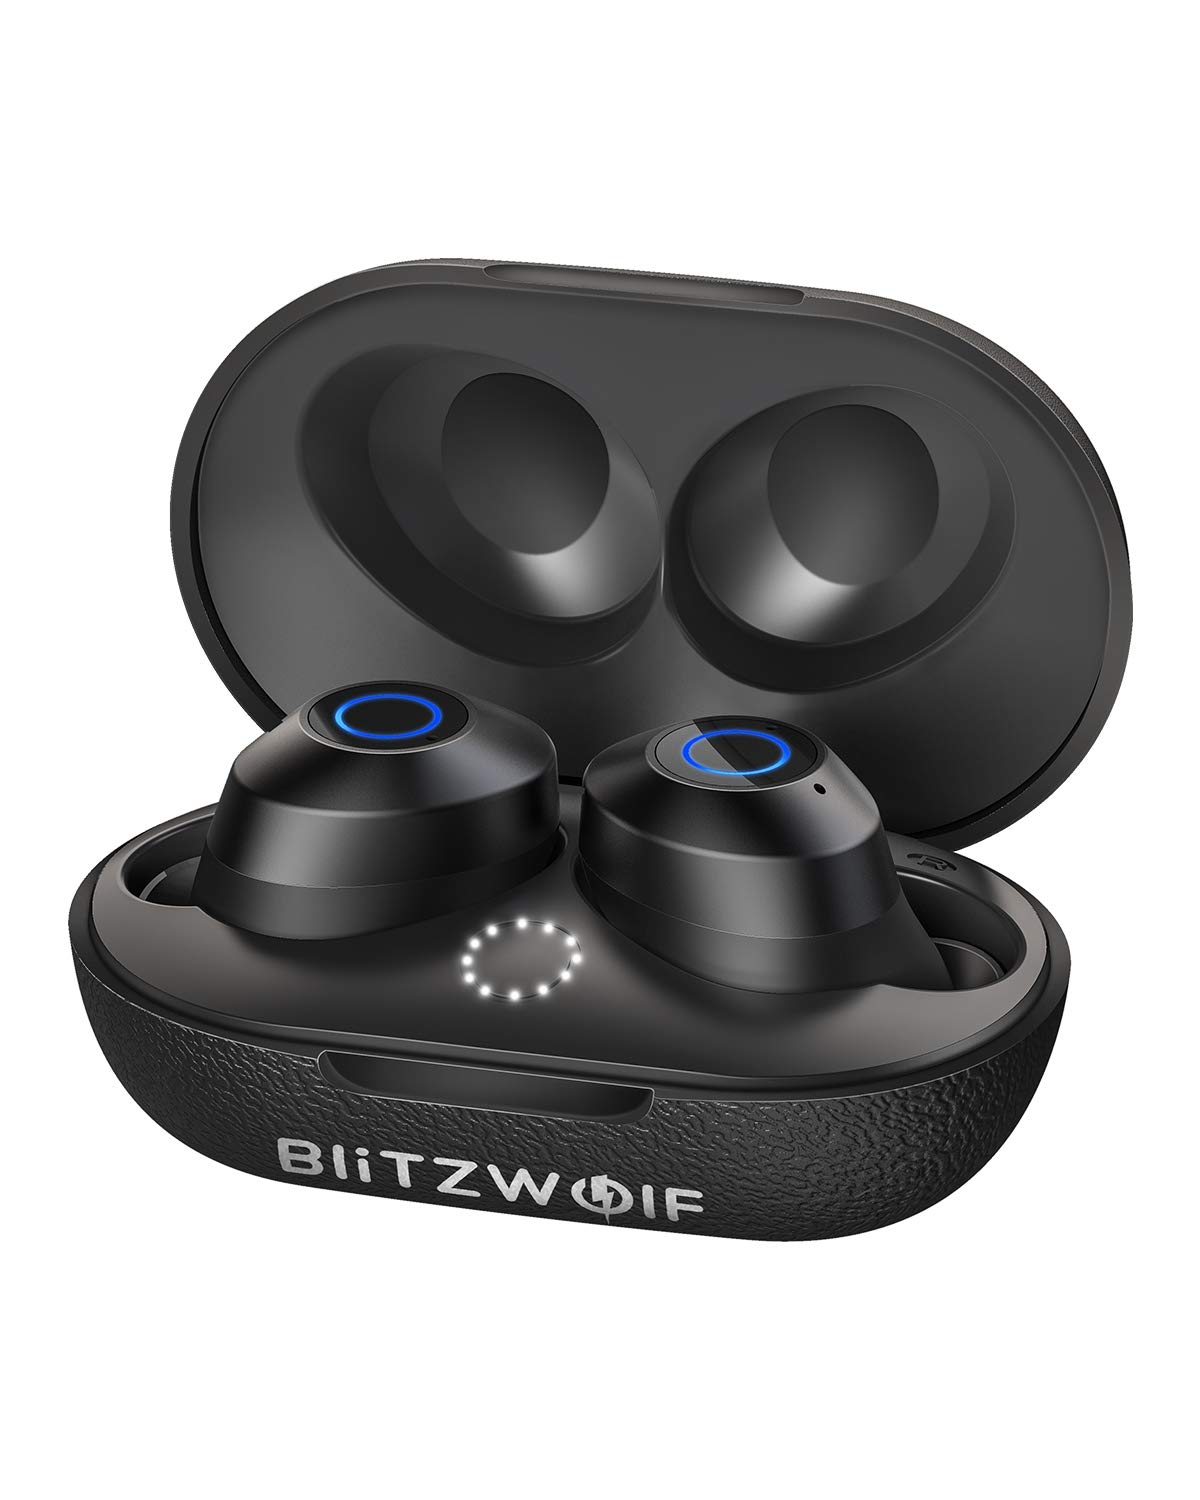 Wireless Earbuds, BlitzWolf Deep Bass Bluetooth 5.0 Mini Earbuds, True Wireless Stereo Sound Bluetooth Headphone with Portable Charging Case and Built-in Microphone, One-Step Pairing, IPX6 Waterproof